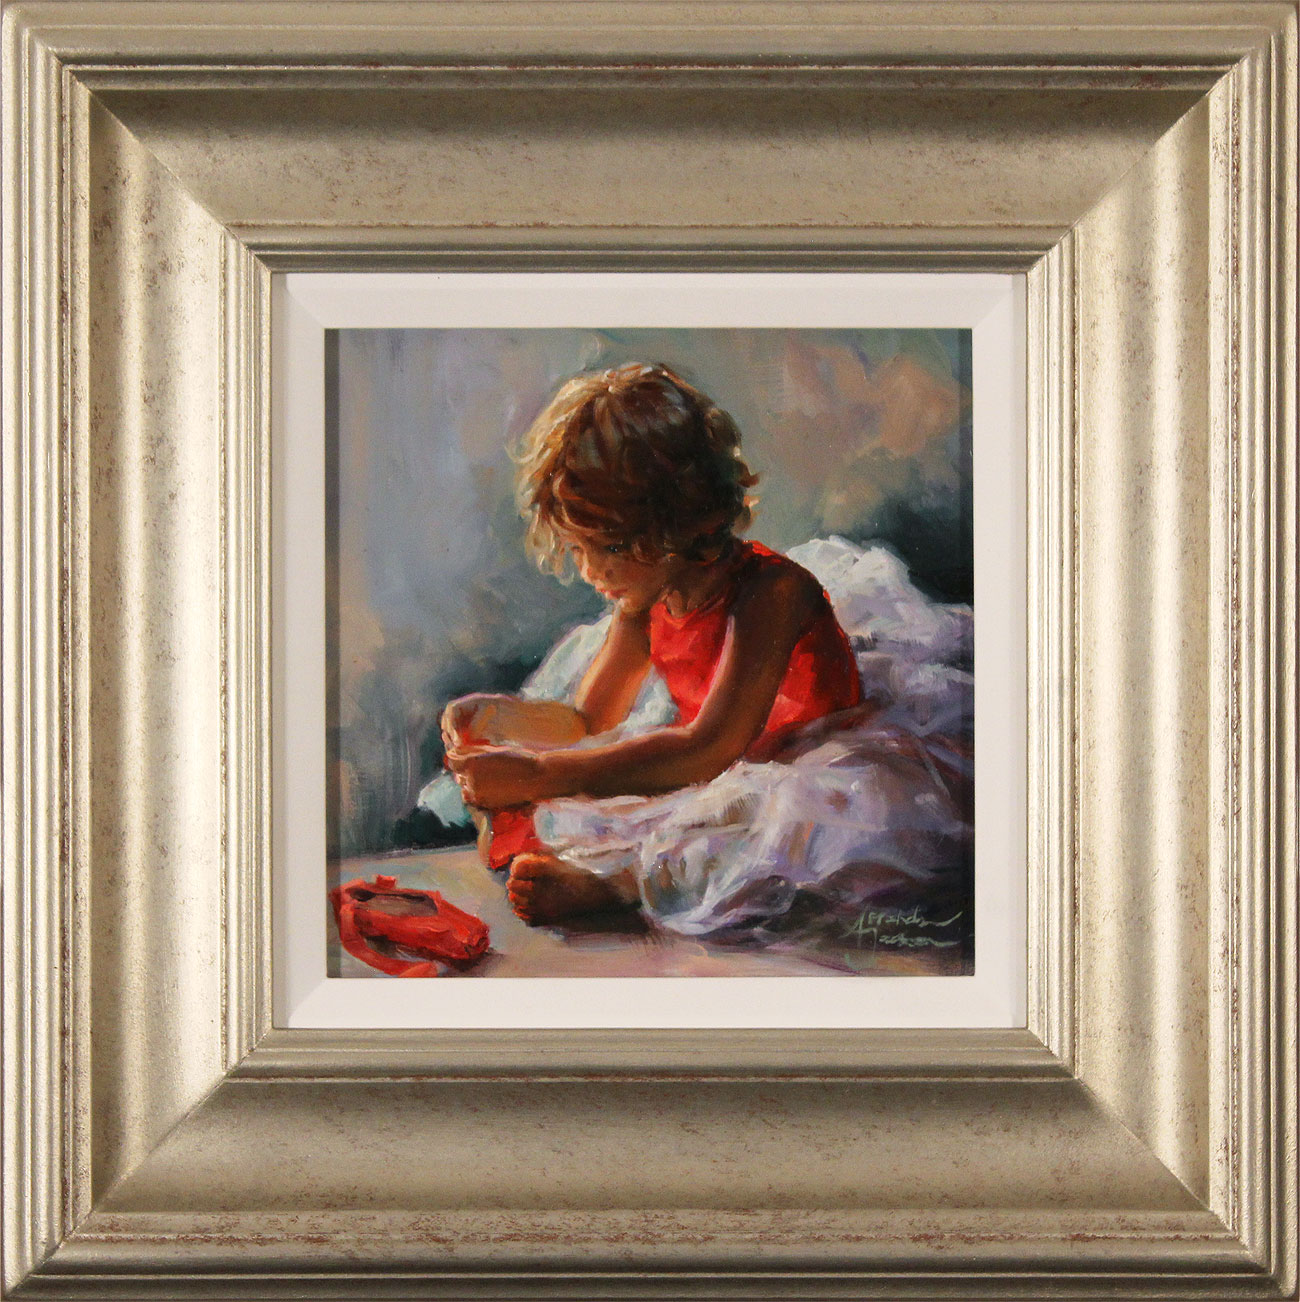 Amanda Jackson, Original oil painting on panel, Ruby Slippers Click to enlarge